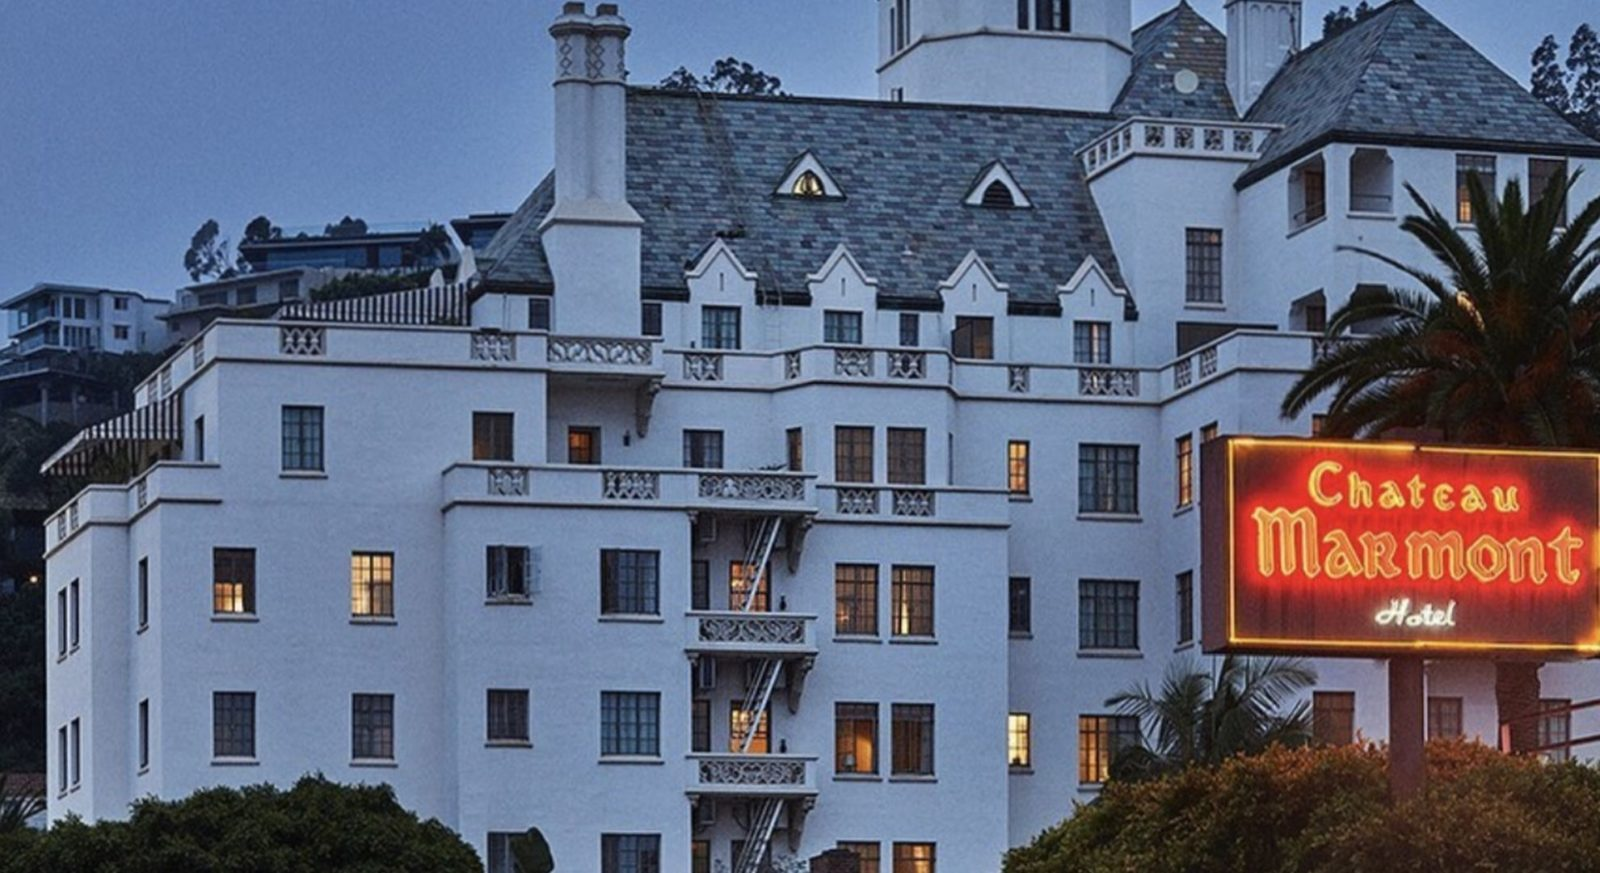 Hollywood's Chateau Marmont is Set to be Turned into a Members-Only Hotel